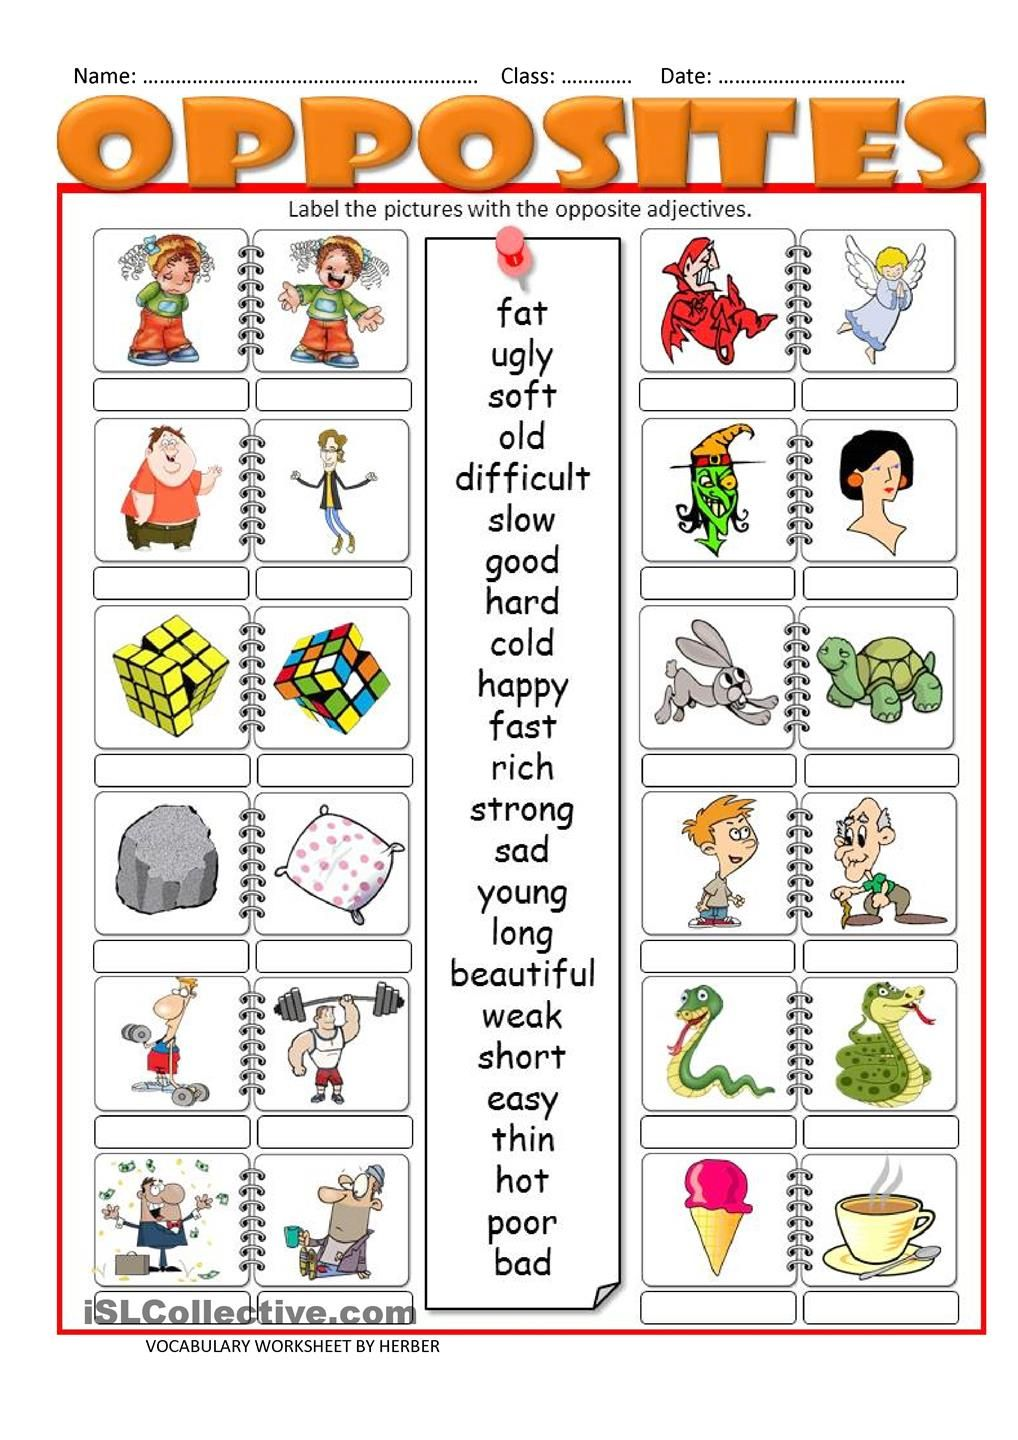 Worksheet Worksheets On Opposites 17 best images about opposites on pinterest kids education kindergarten worksheets and preschool worksheets